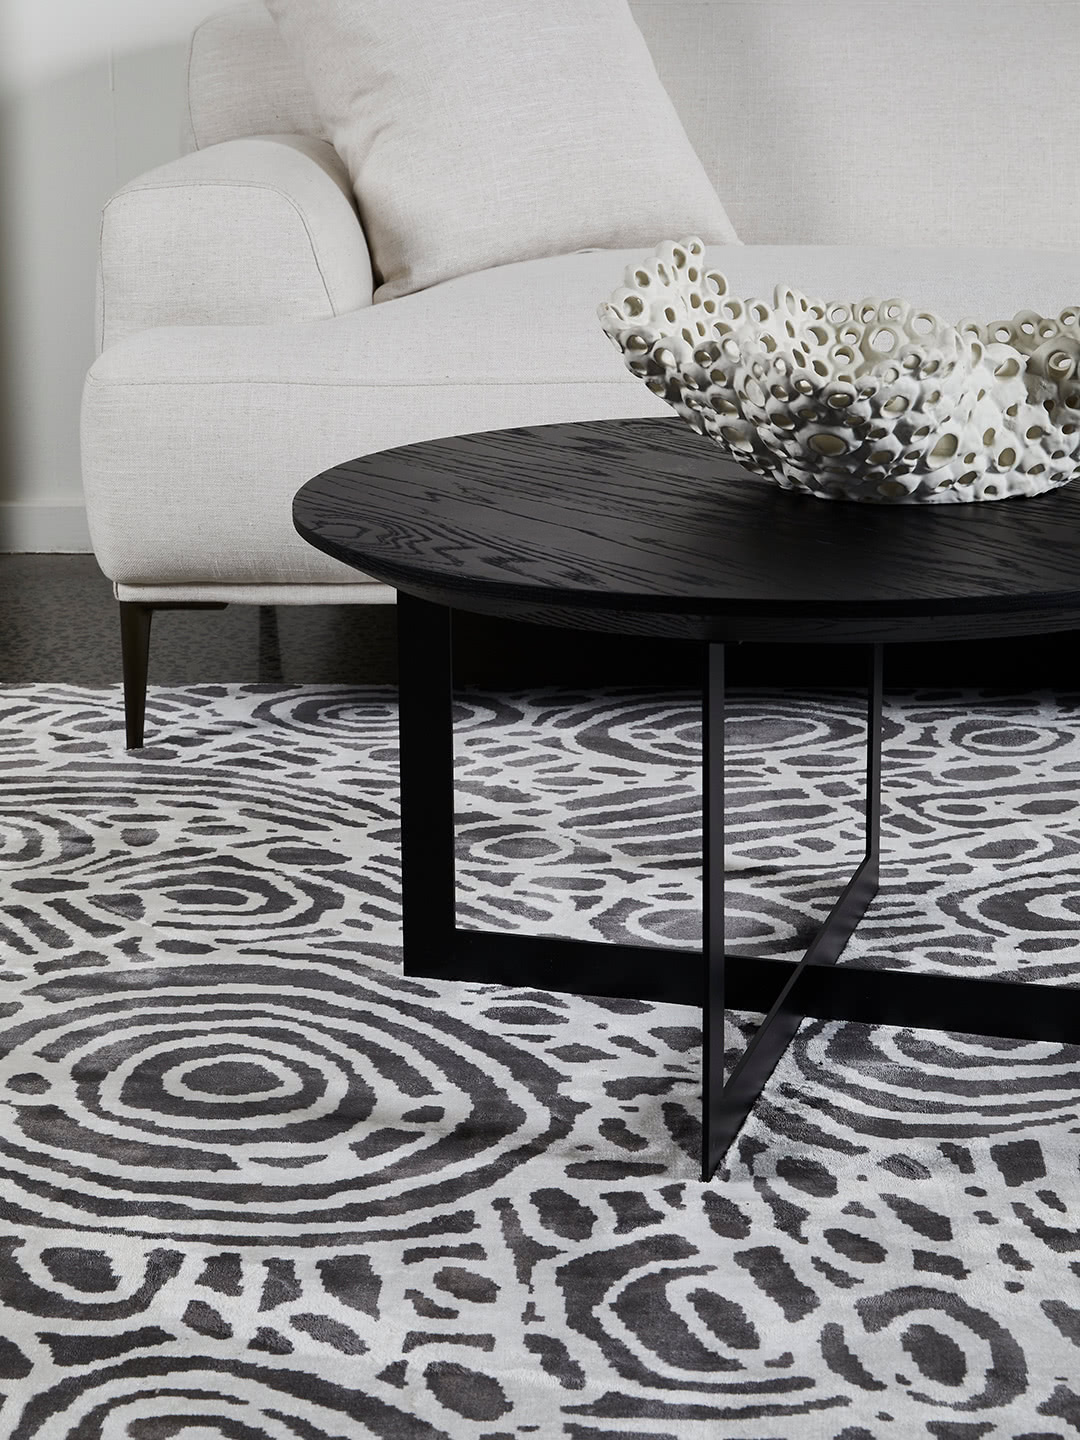 Kwerralya by Charmaine Pwerle - Indigenours rug design with black and white pattern